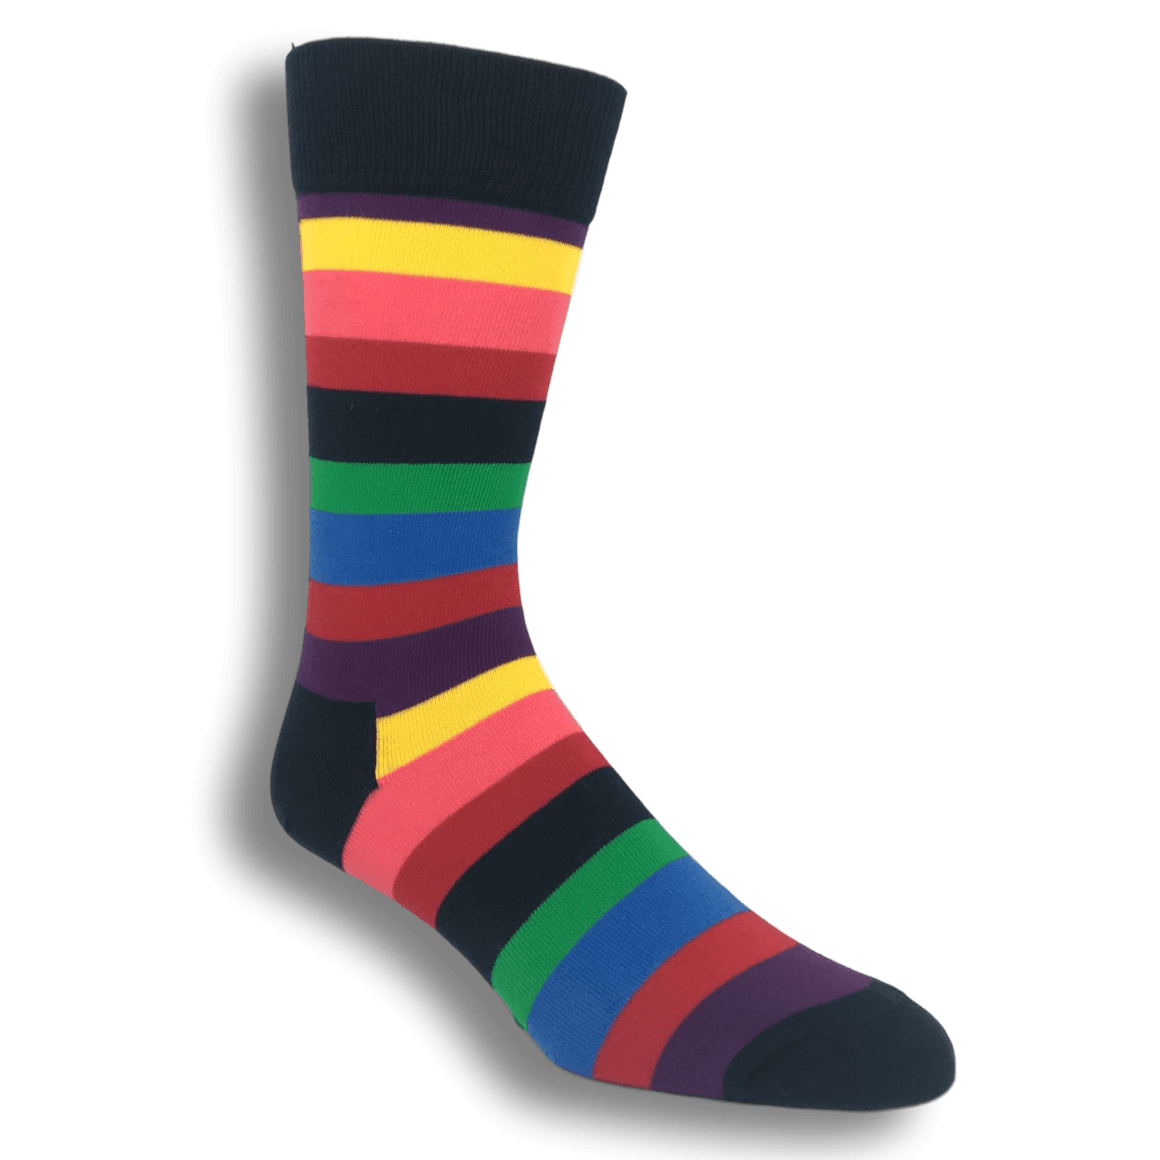 Socks - Multi Colored Stripe Socks By Happy Socks